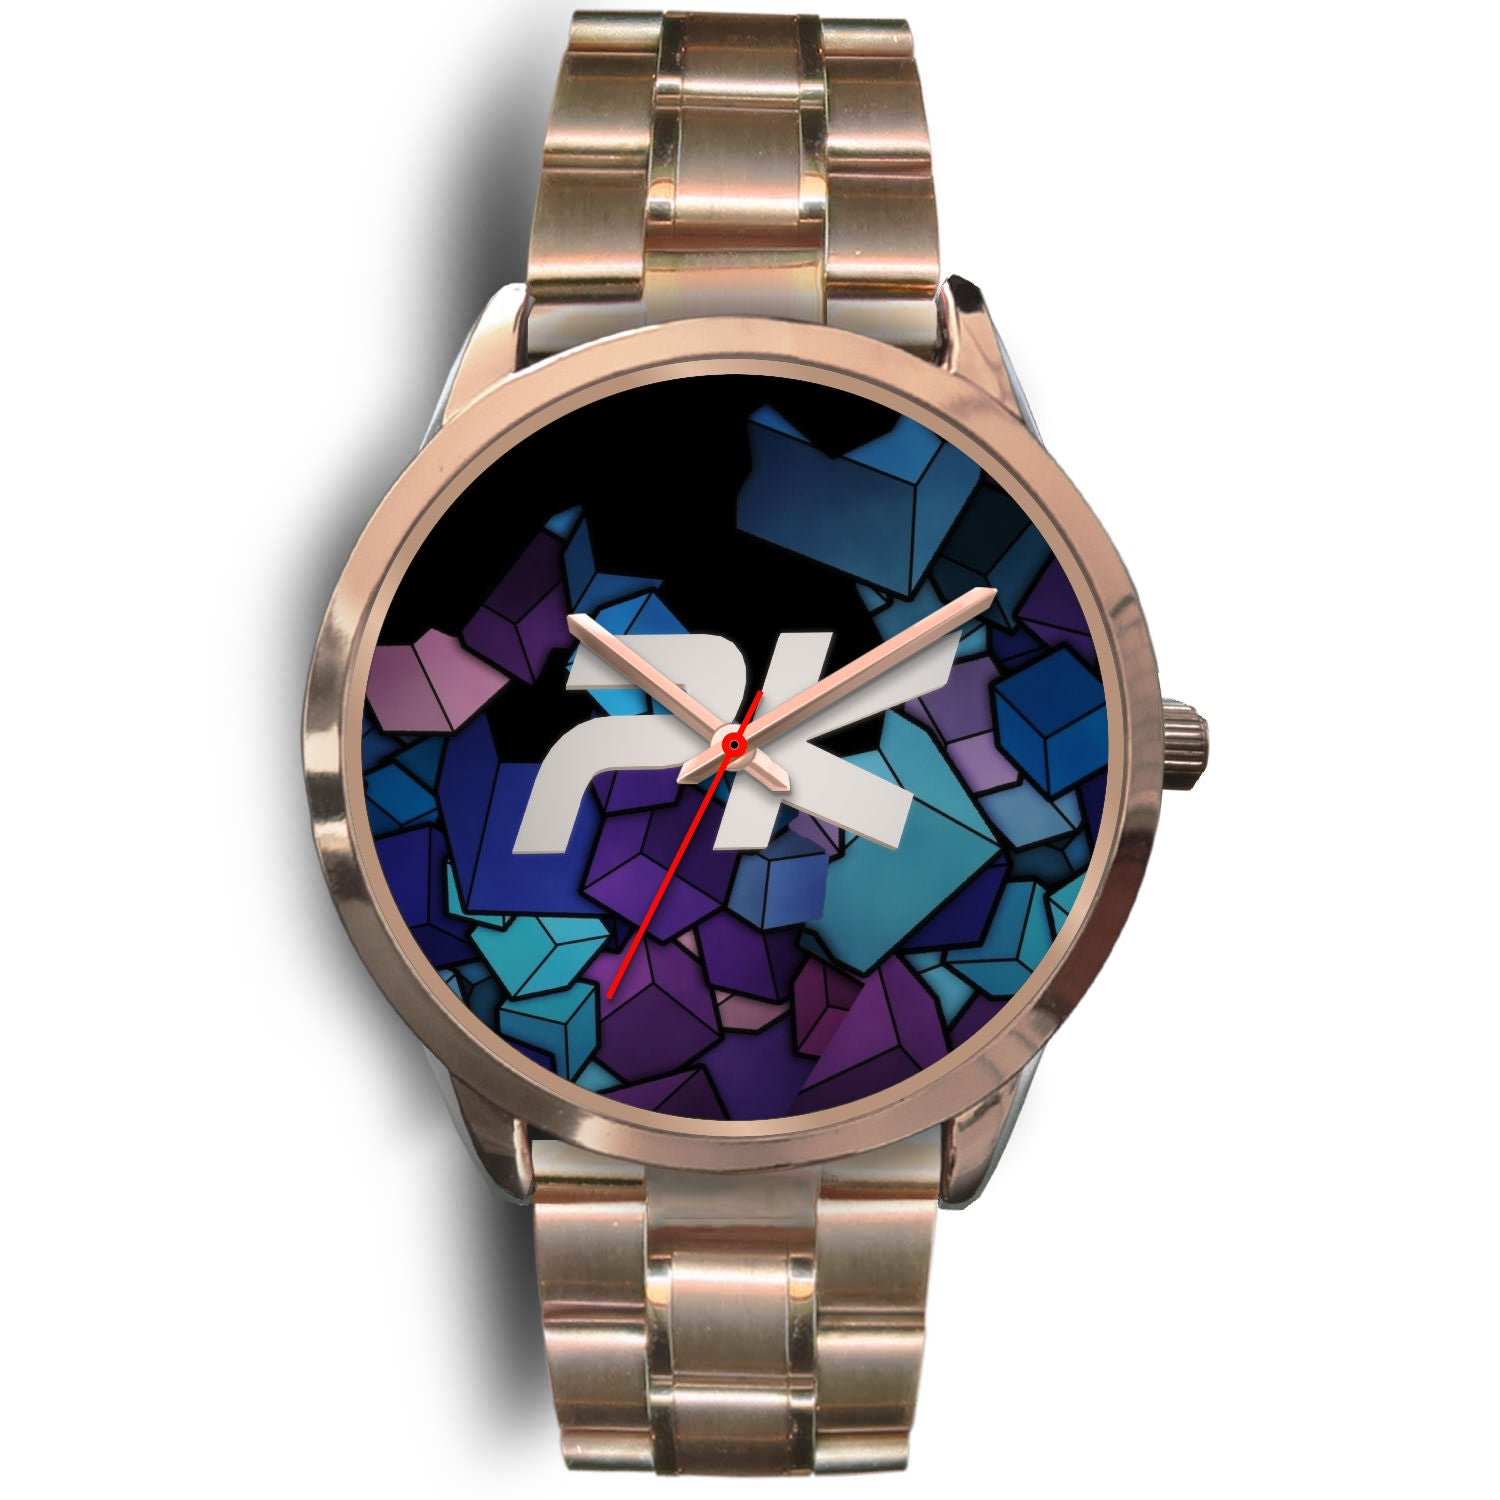 PK CUBED - UNISEX WATCH - LEATHER/ METAL BANDS